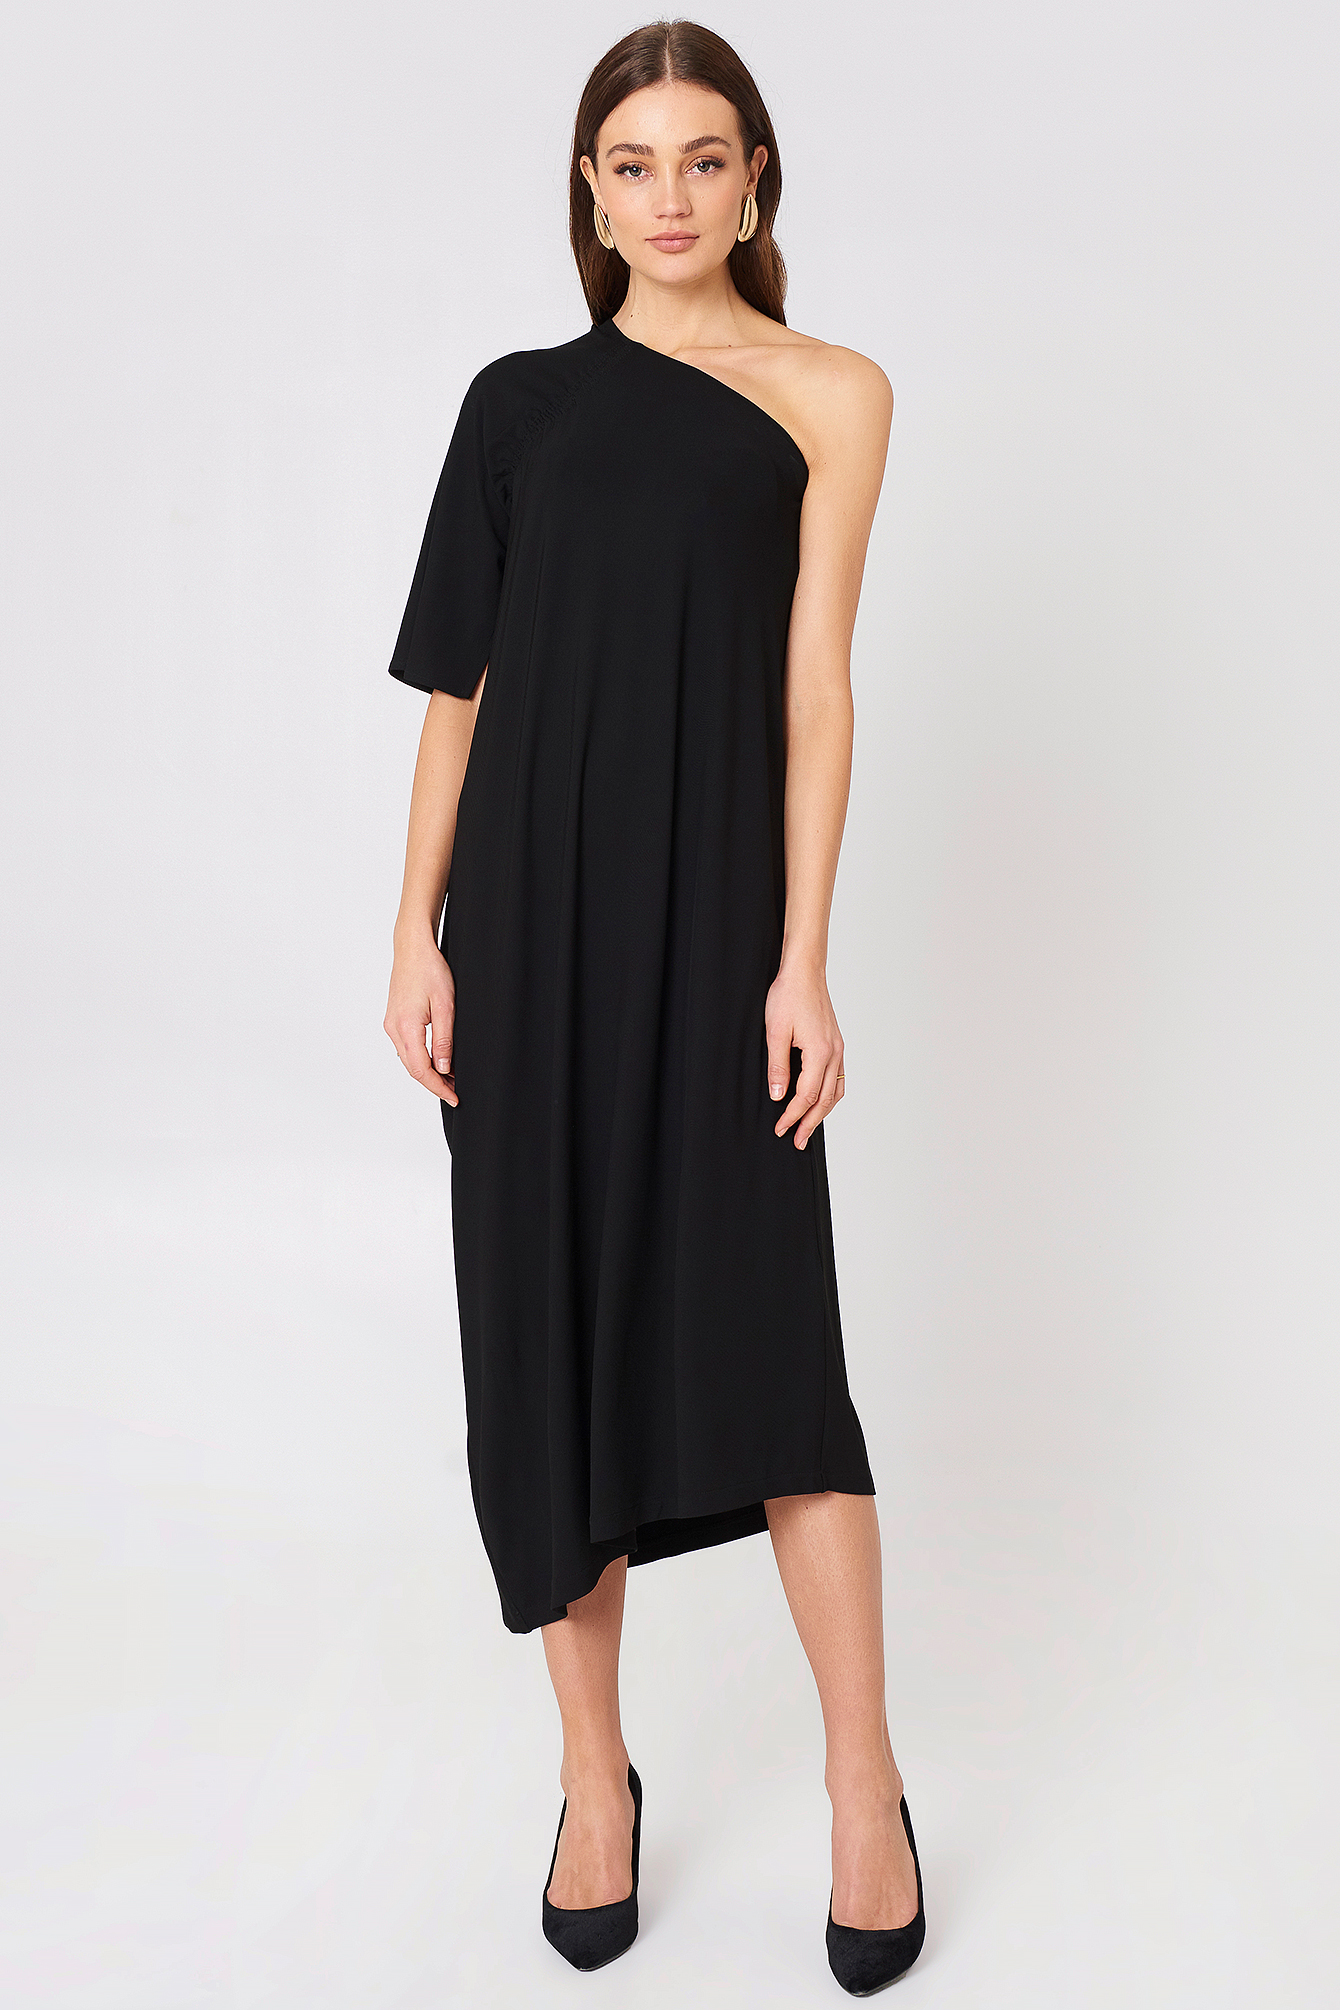 Filippa K - Asymmetric Evening Dress